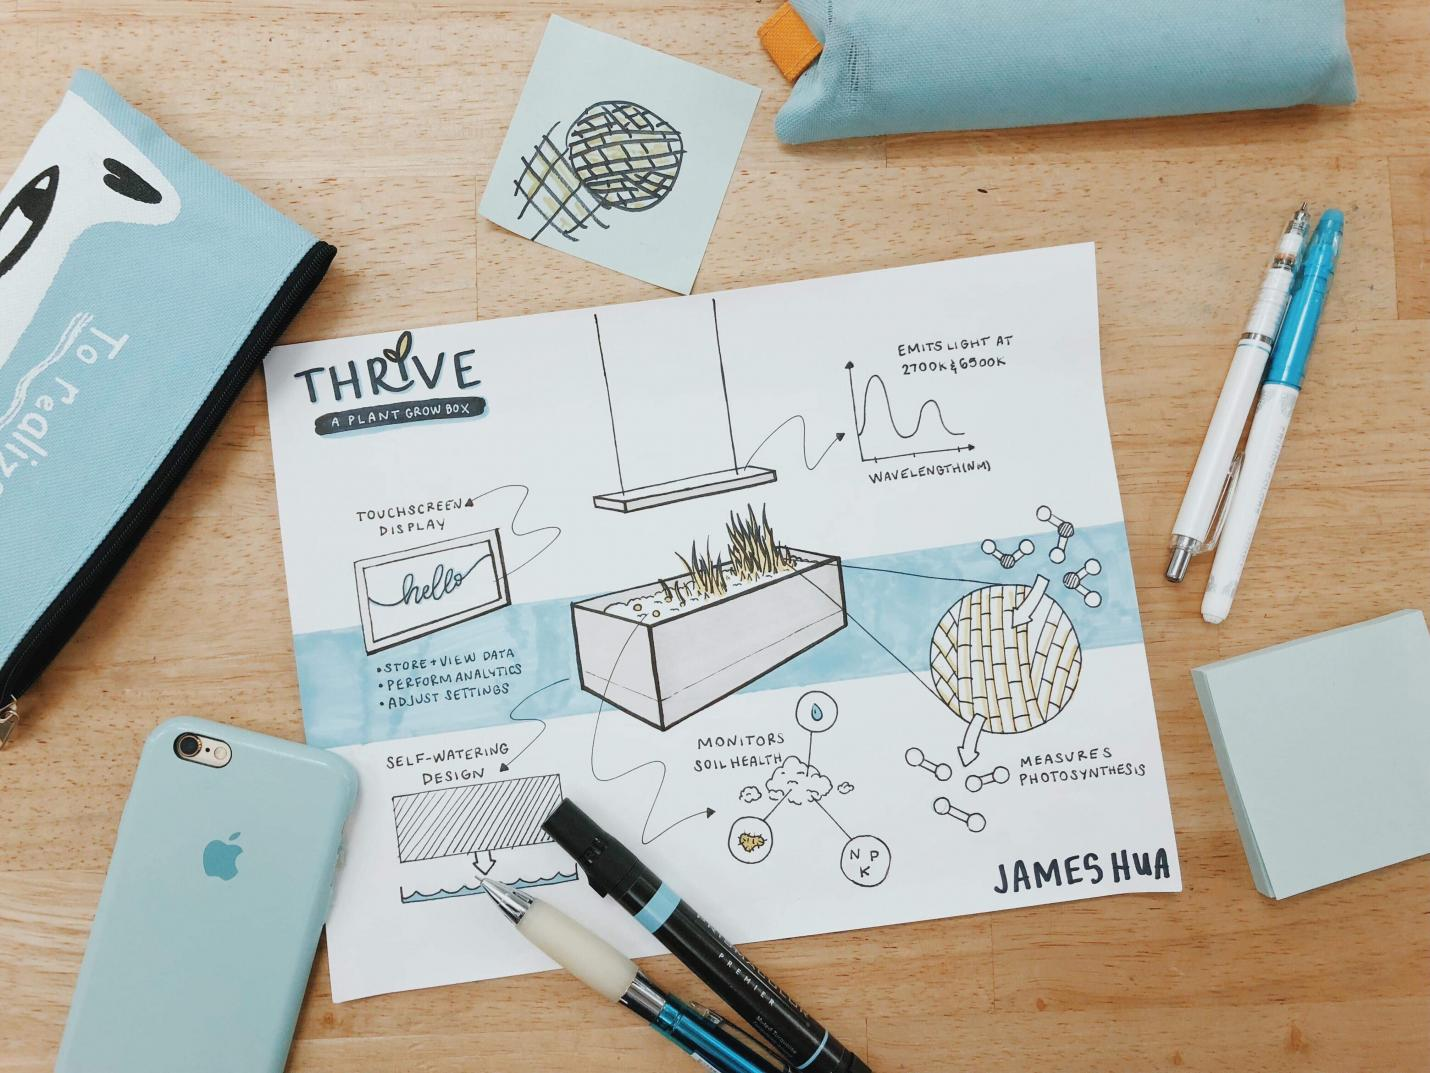 Thrive, a student project by James Hua